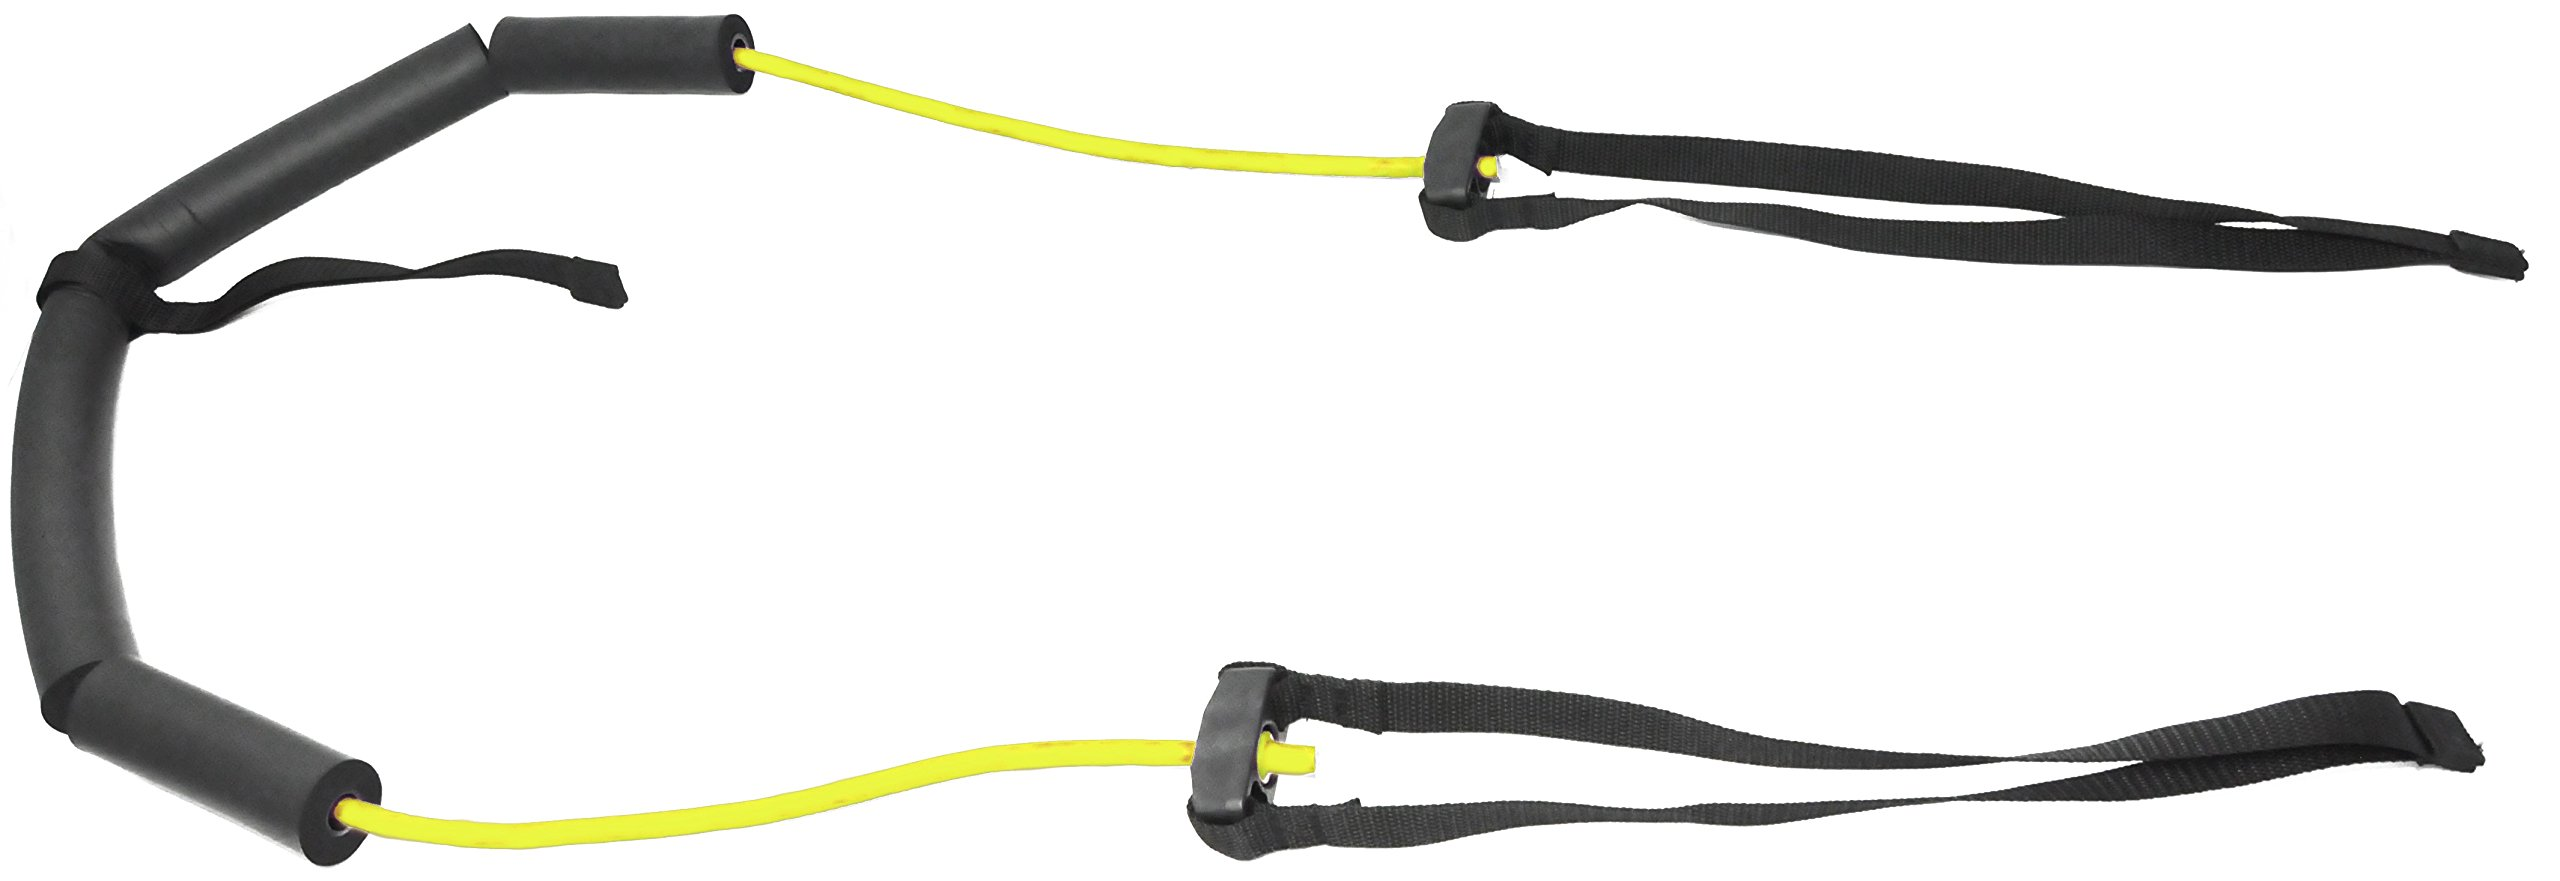 Perform Better Extra Heavy Resistance Gray Cook Exercise Band, Yellow